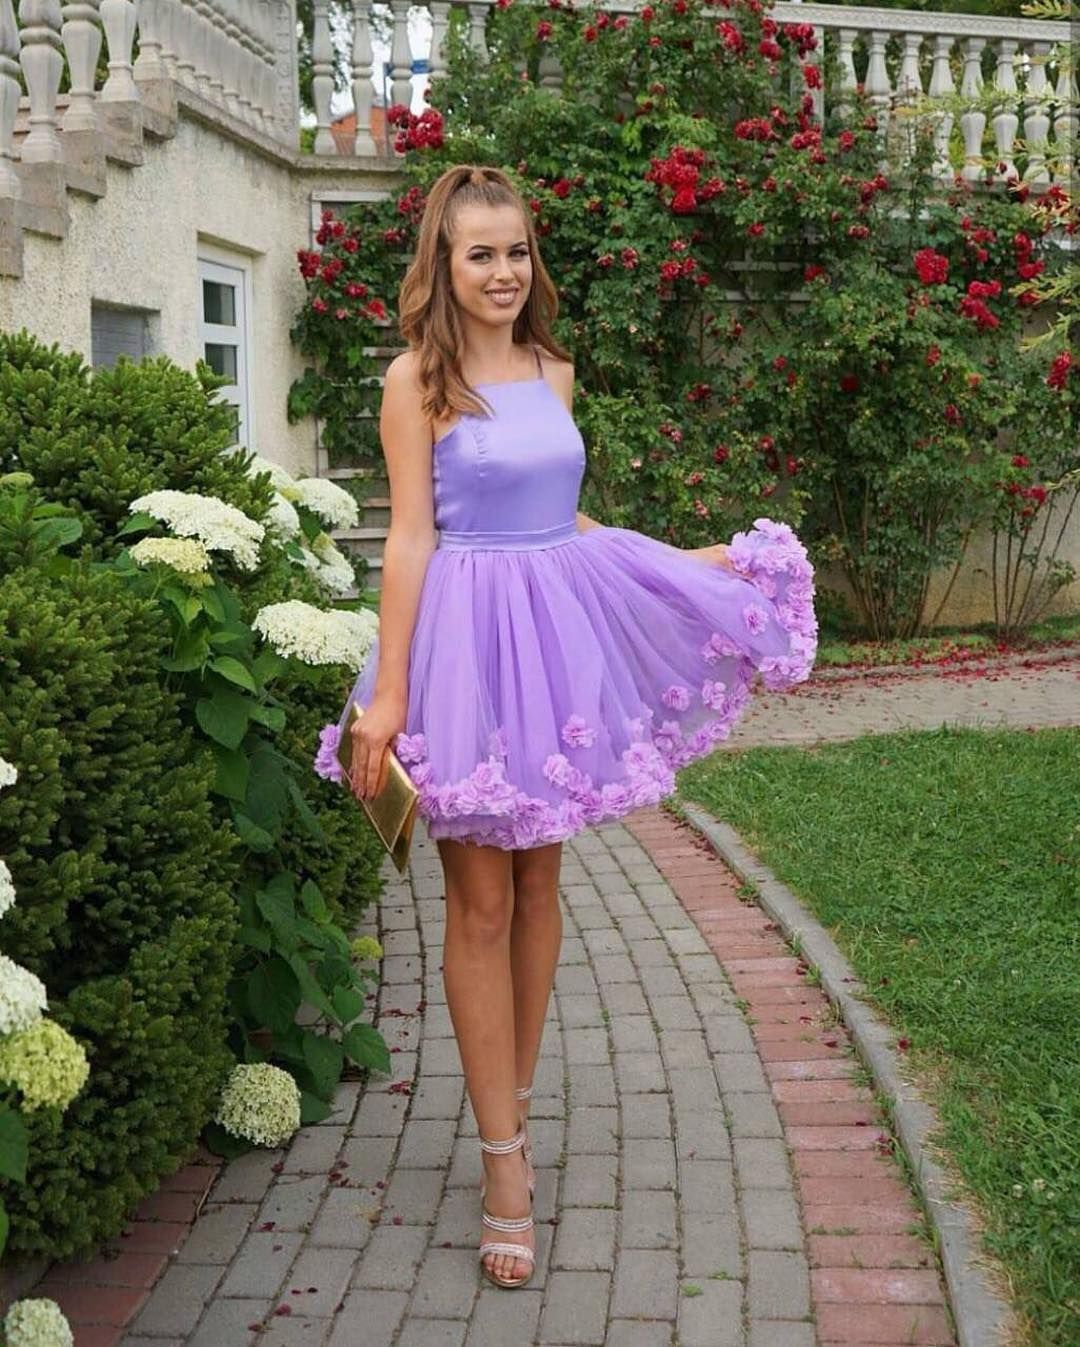 New The 10 Best Hairstyles With Pictures New Collection Akfashion By Ardiana Kukaj Purple Homecoming Dress Homecoming Dresses Prom Dresses Short